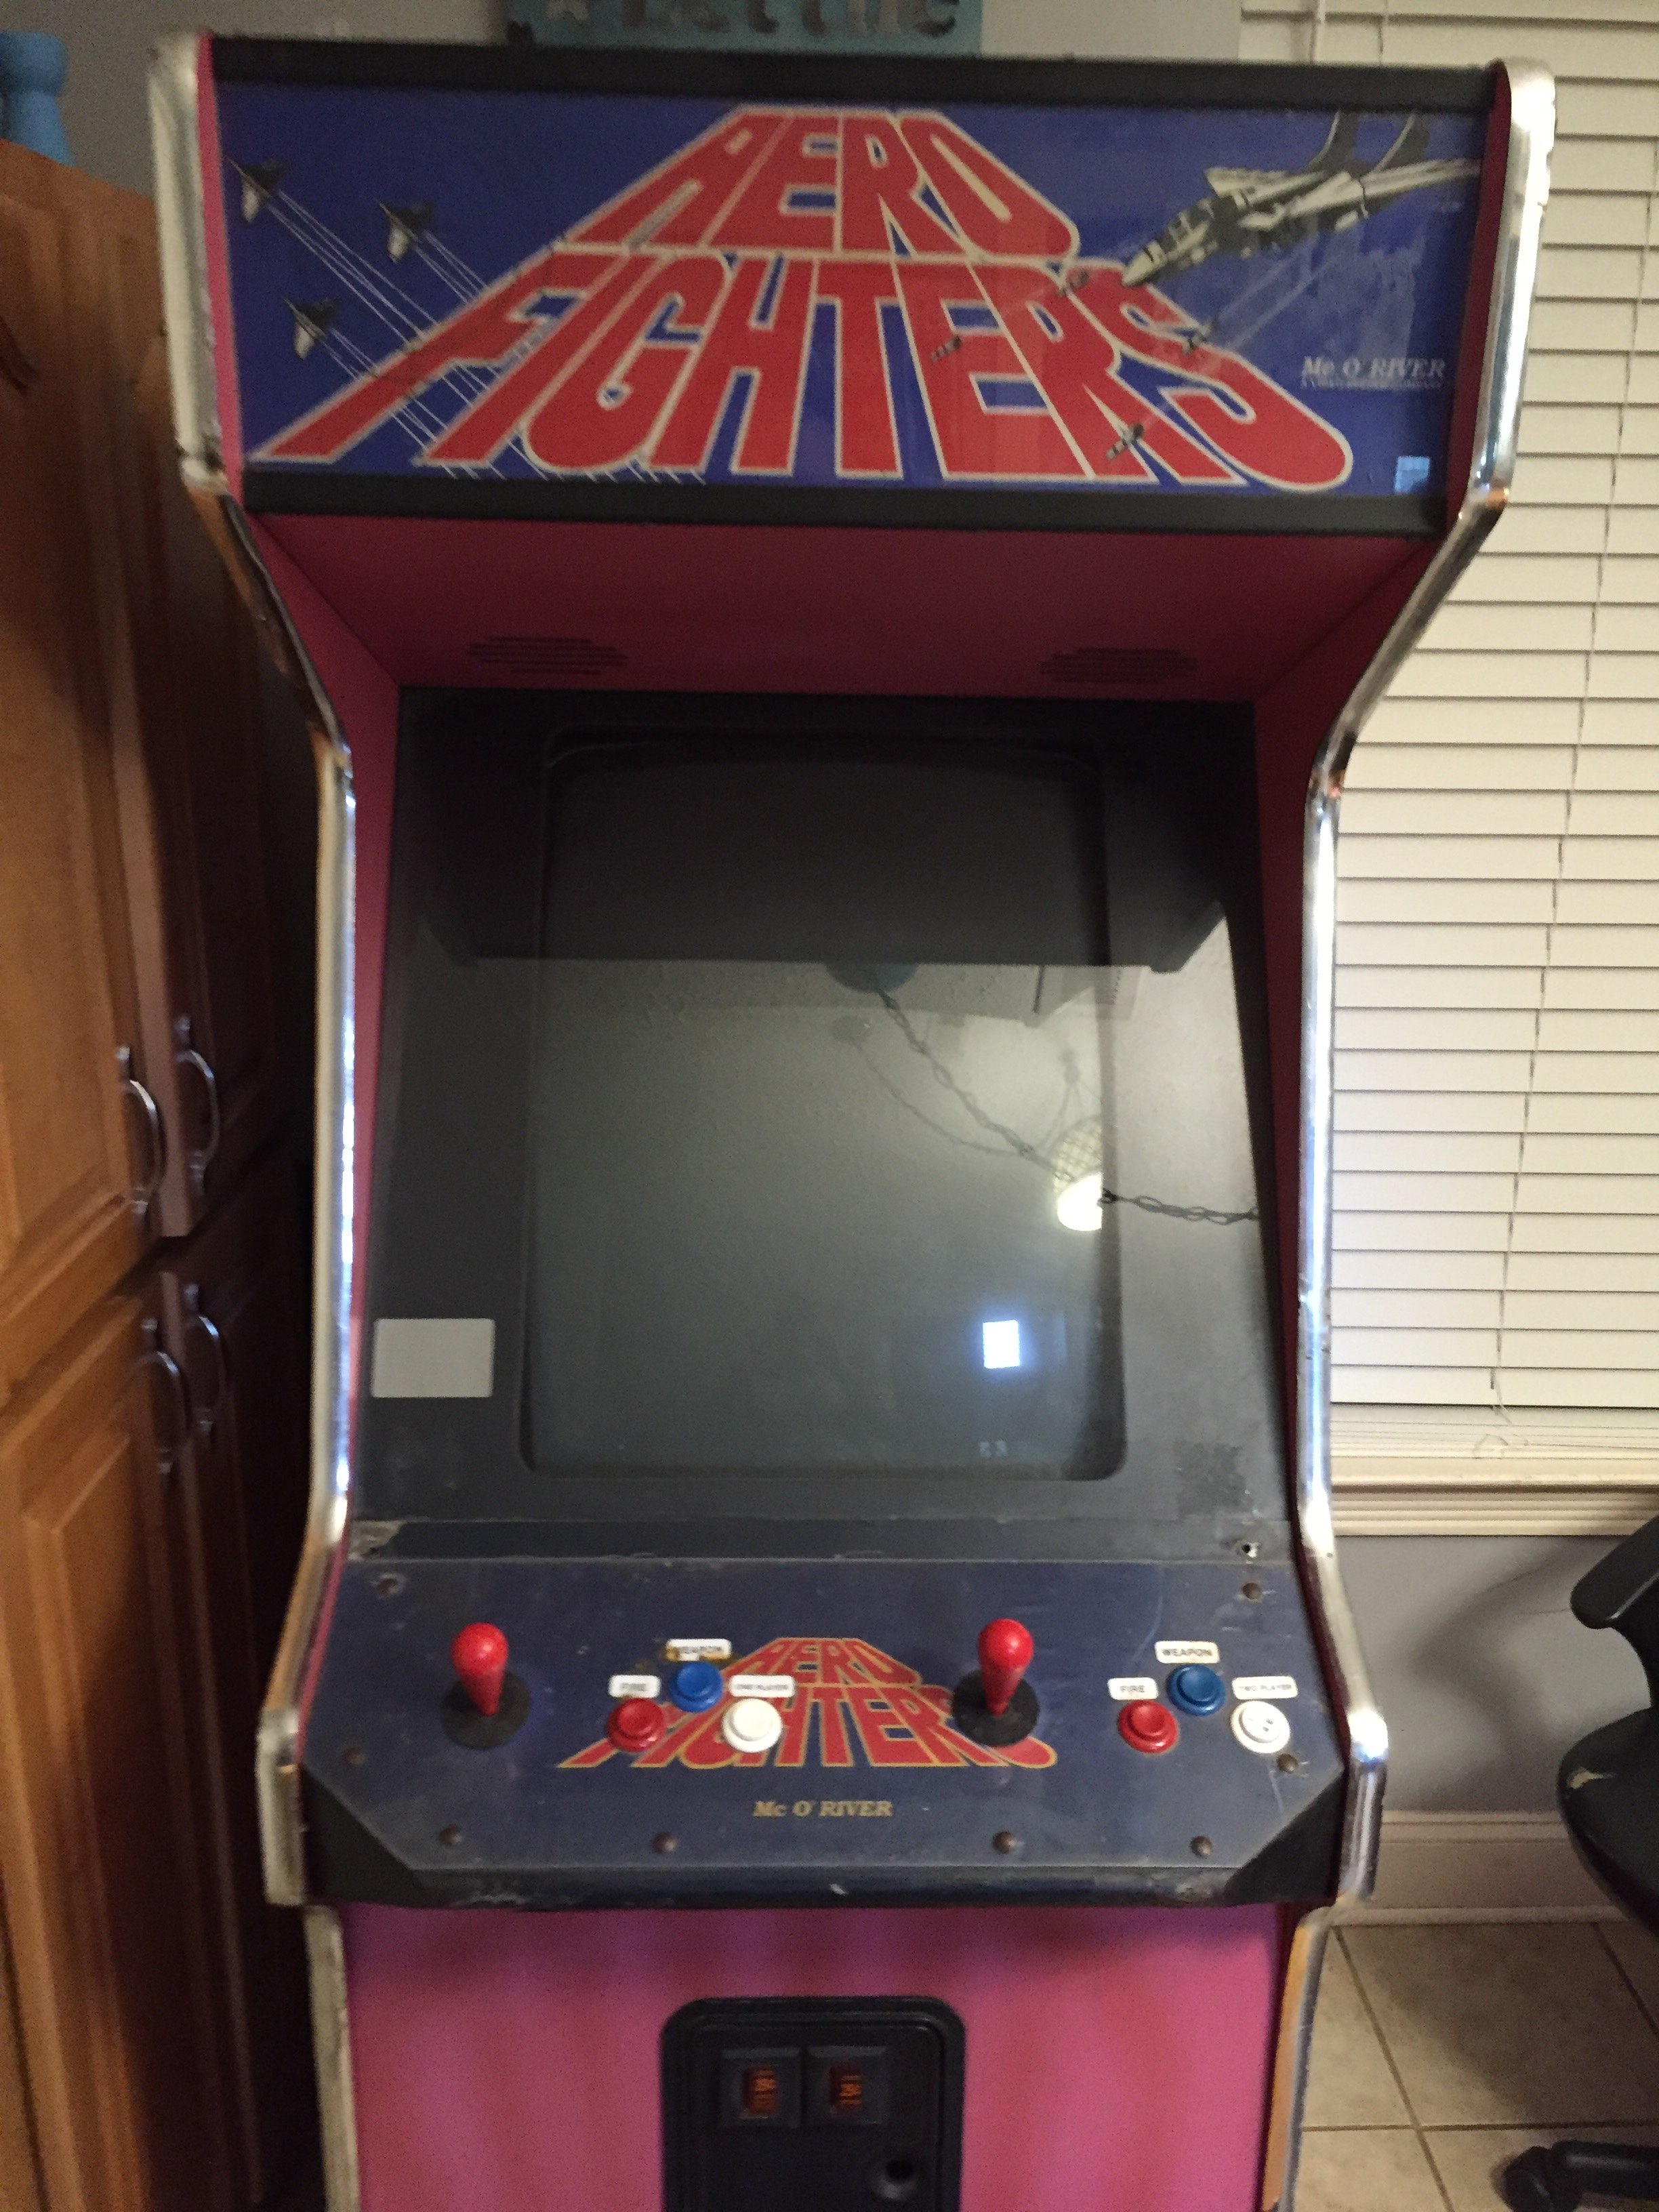 Attached Thumbnails & What is this Aero Fighters cabinet - Arcade and Pinball - AtariAge ...